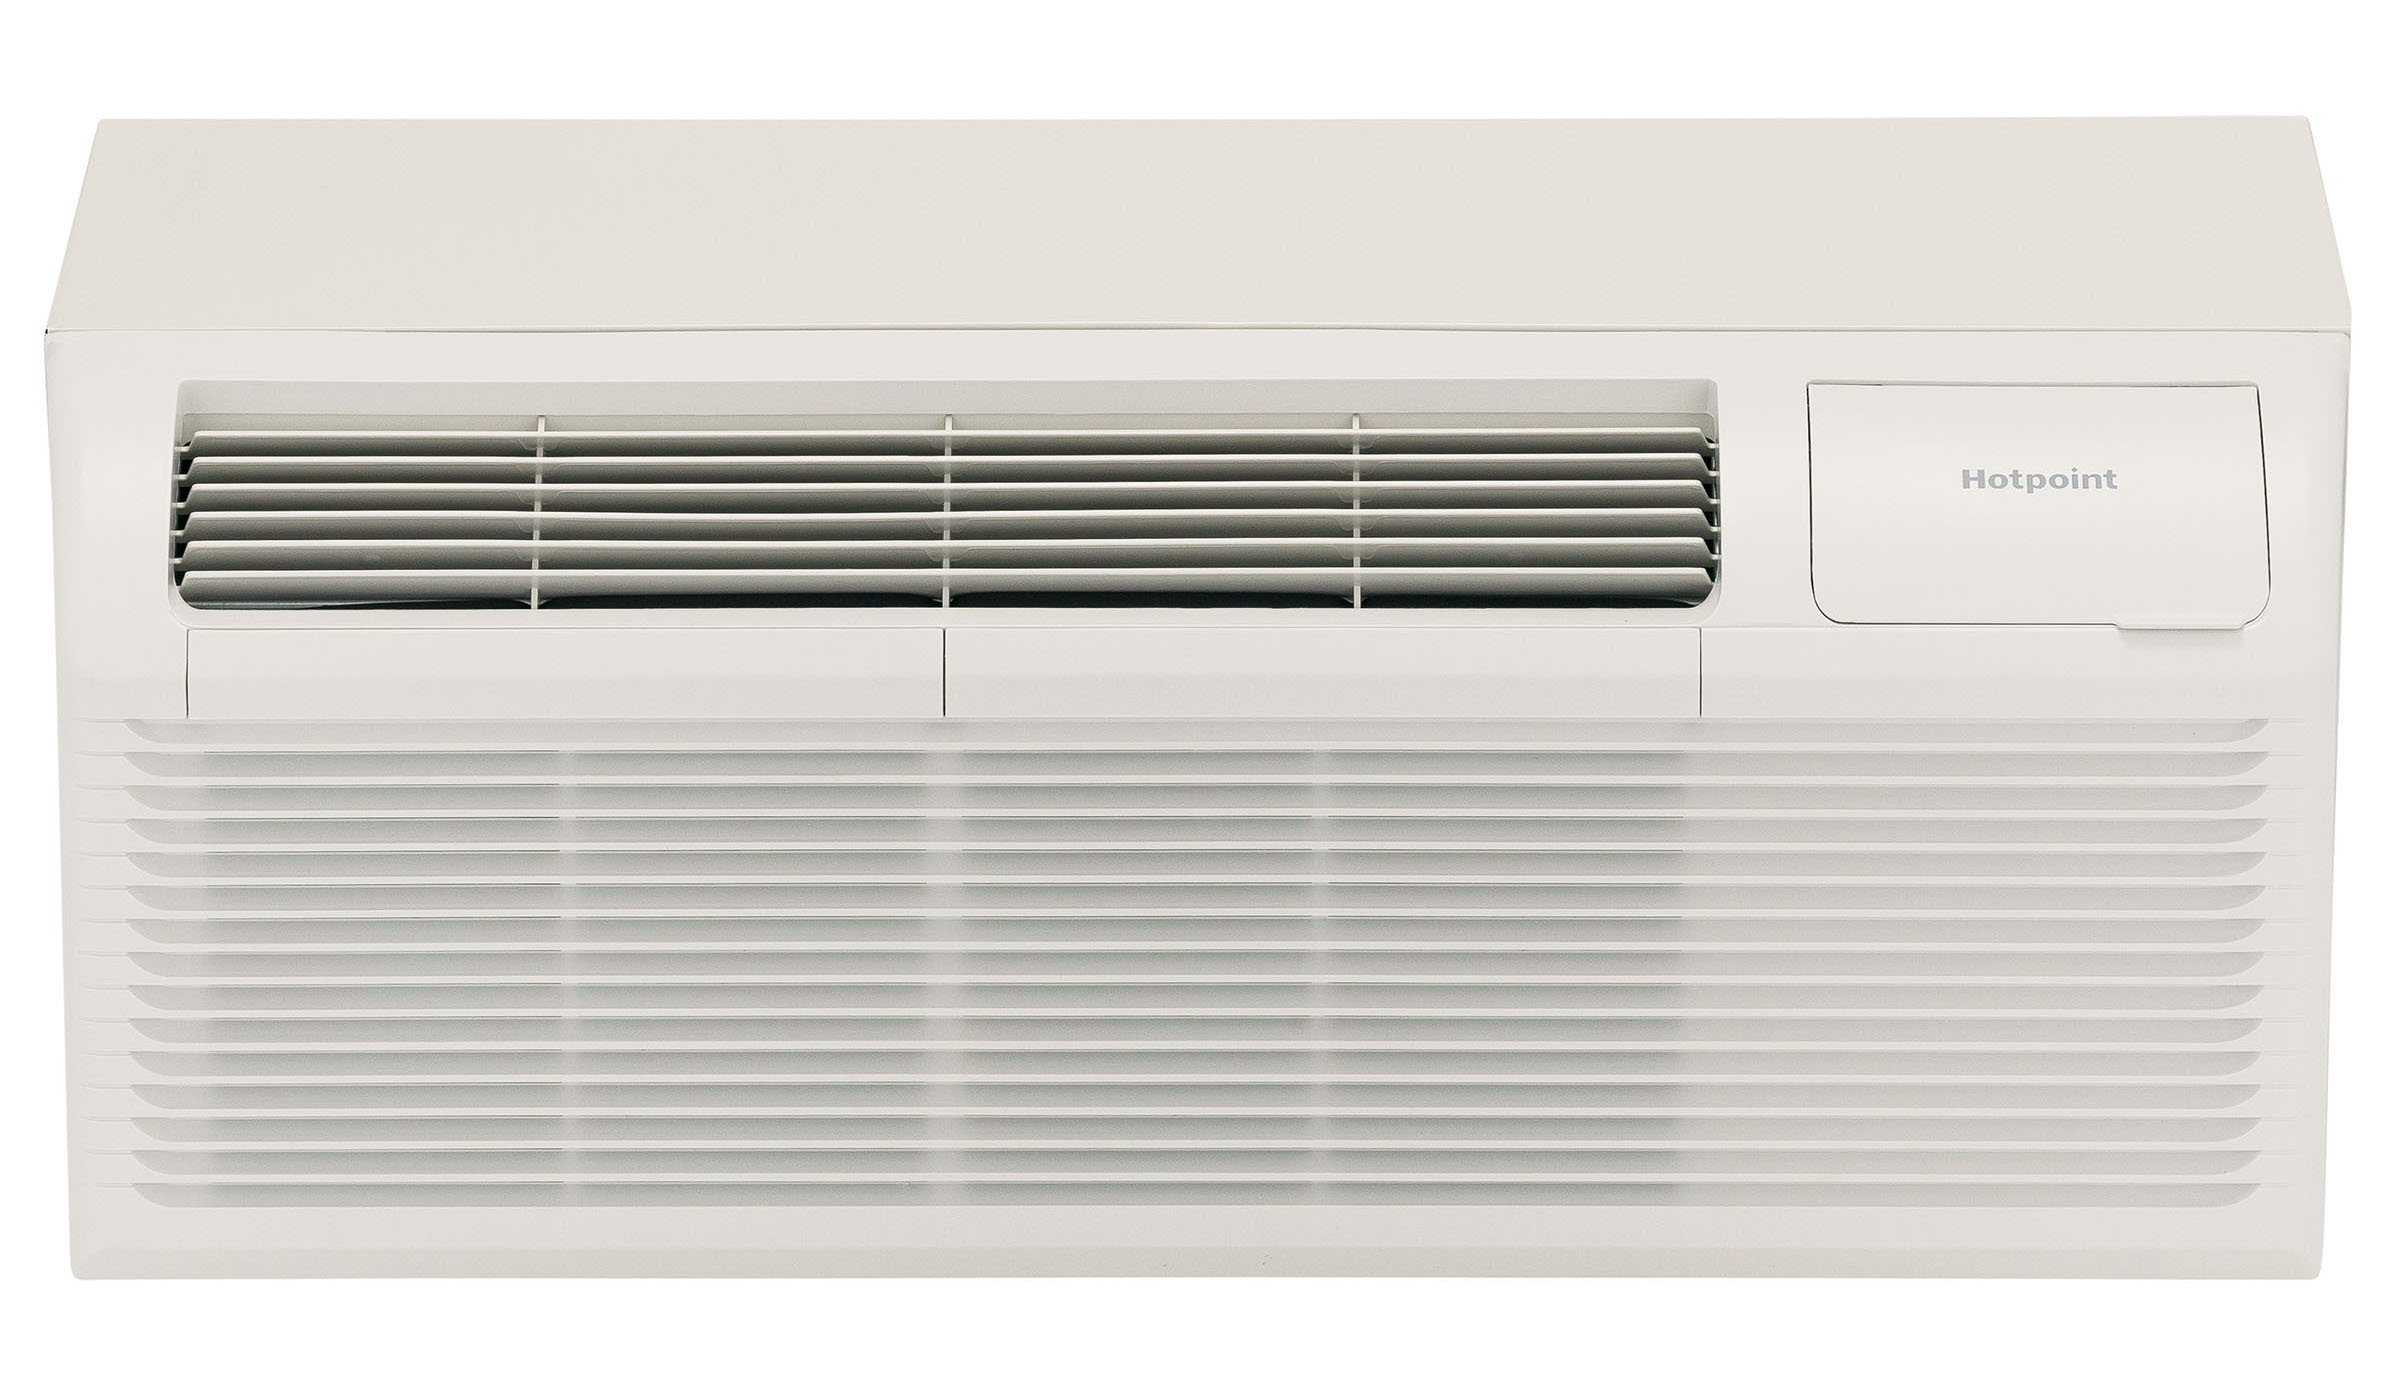 Hotpoint AH11E12D5B 12000 BTU PTAC Air Conditioner with Electric Heat - 30 Amp - 208/230 Volt